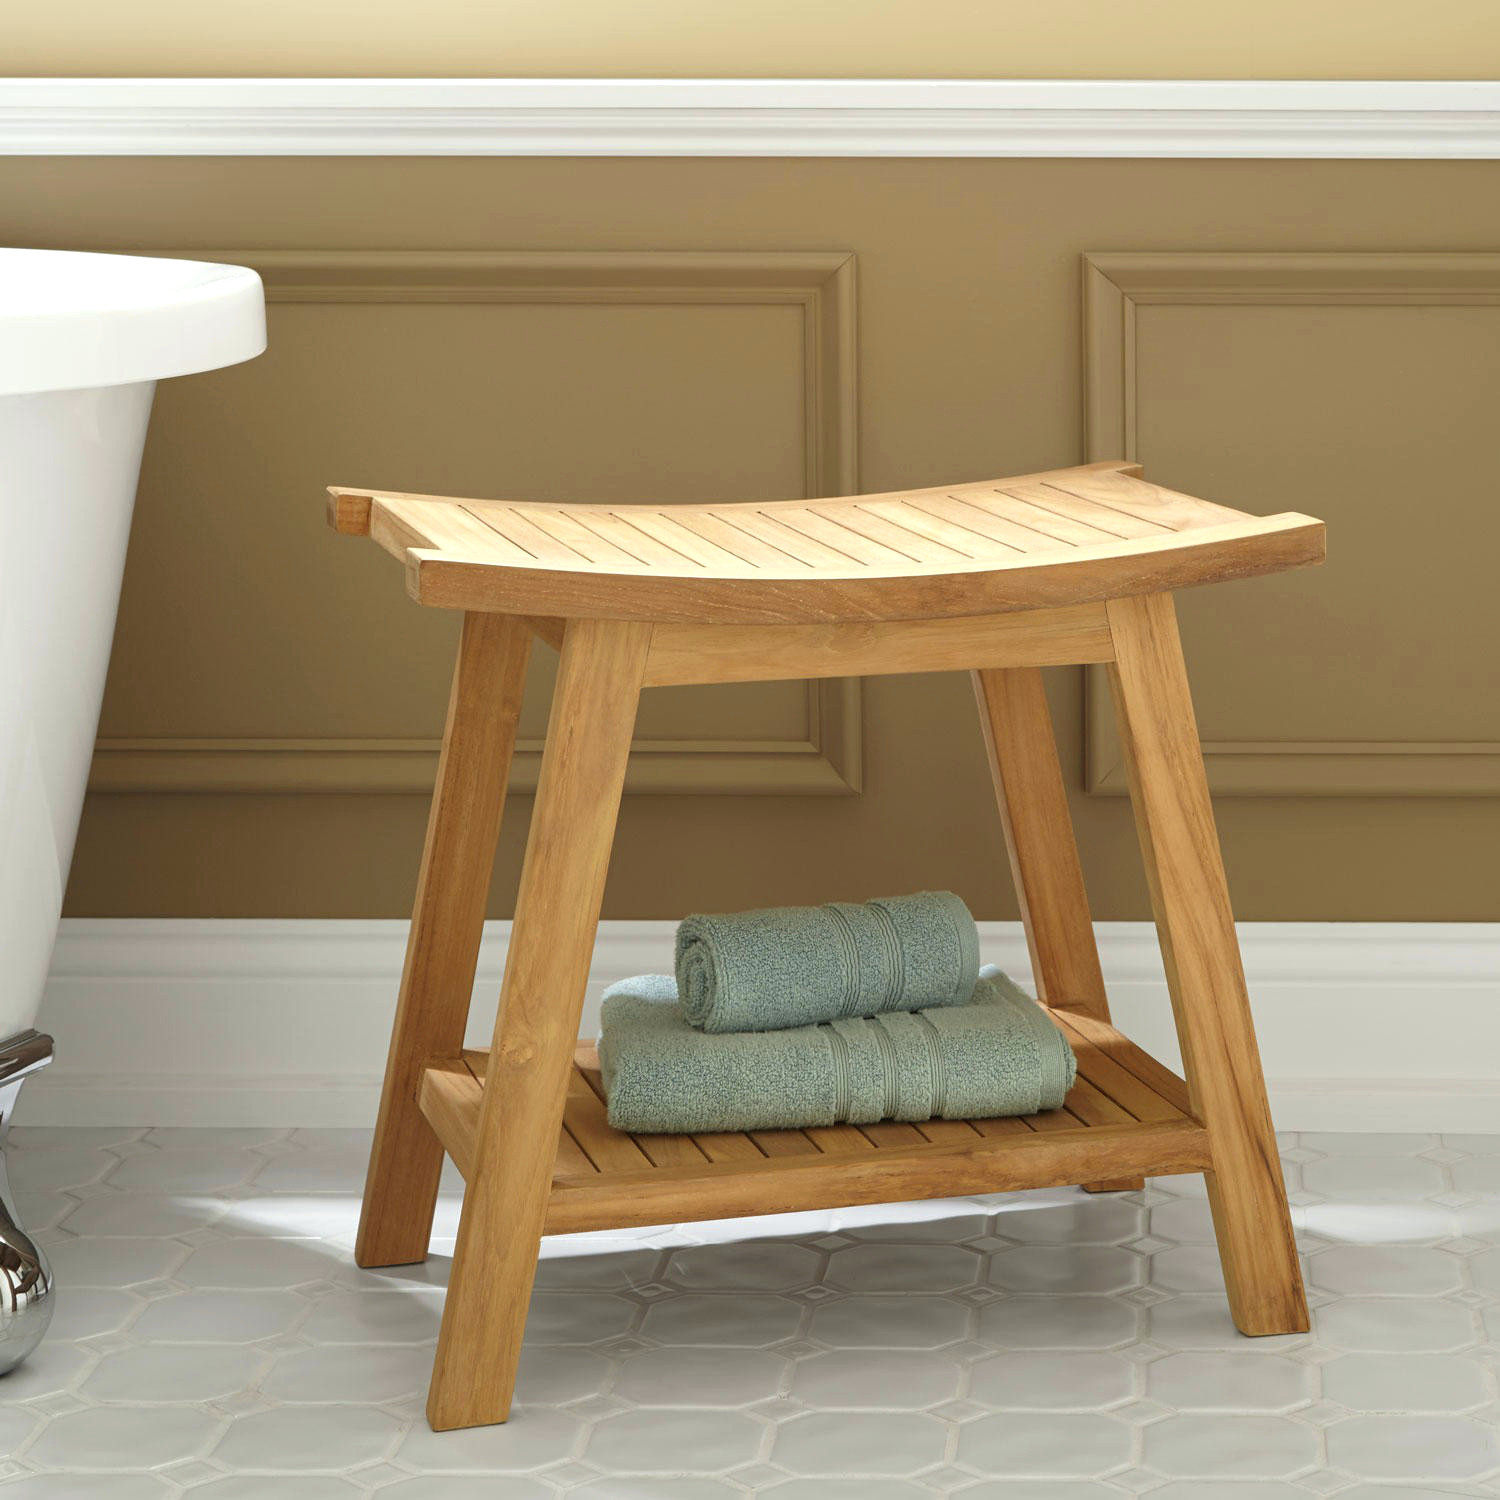 Extended Bath Bench | Bath Transfer Board | Transfer Tub Bench